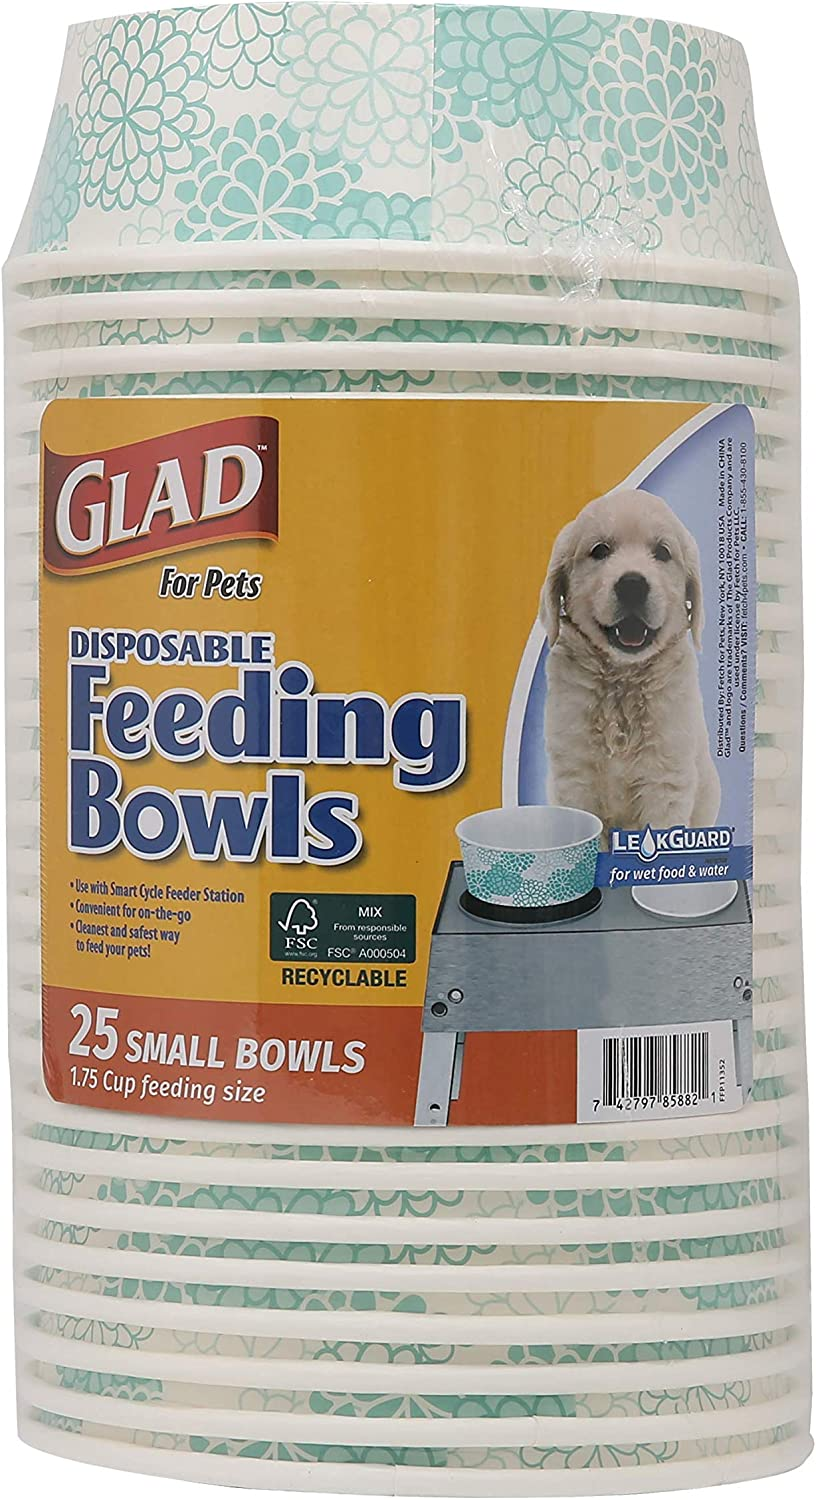 Glad for Pets Disposable Feeding Bowls | Small Dog Bowls in Teal Pattern | 1.75 Cup Feeding Size, 25 Count - Dog Bowls are Great for Dry and Wet Dog Food or Water